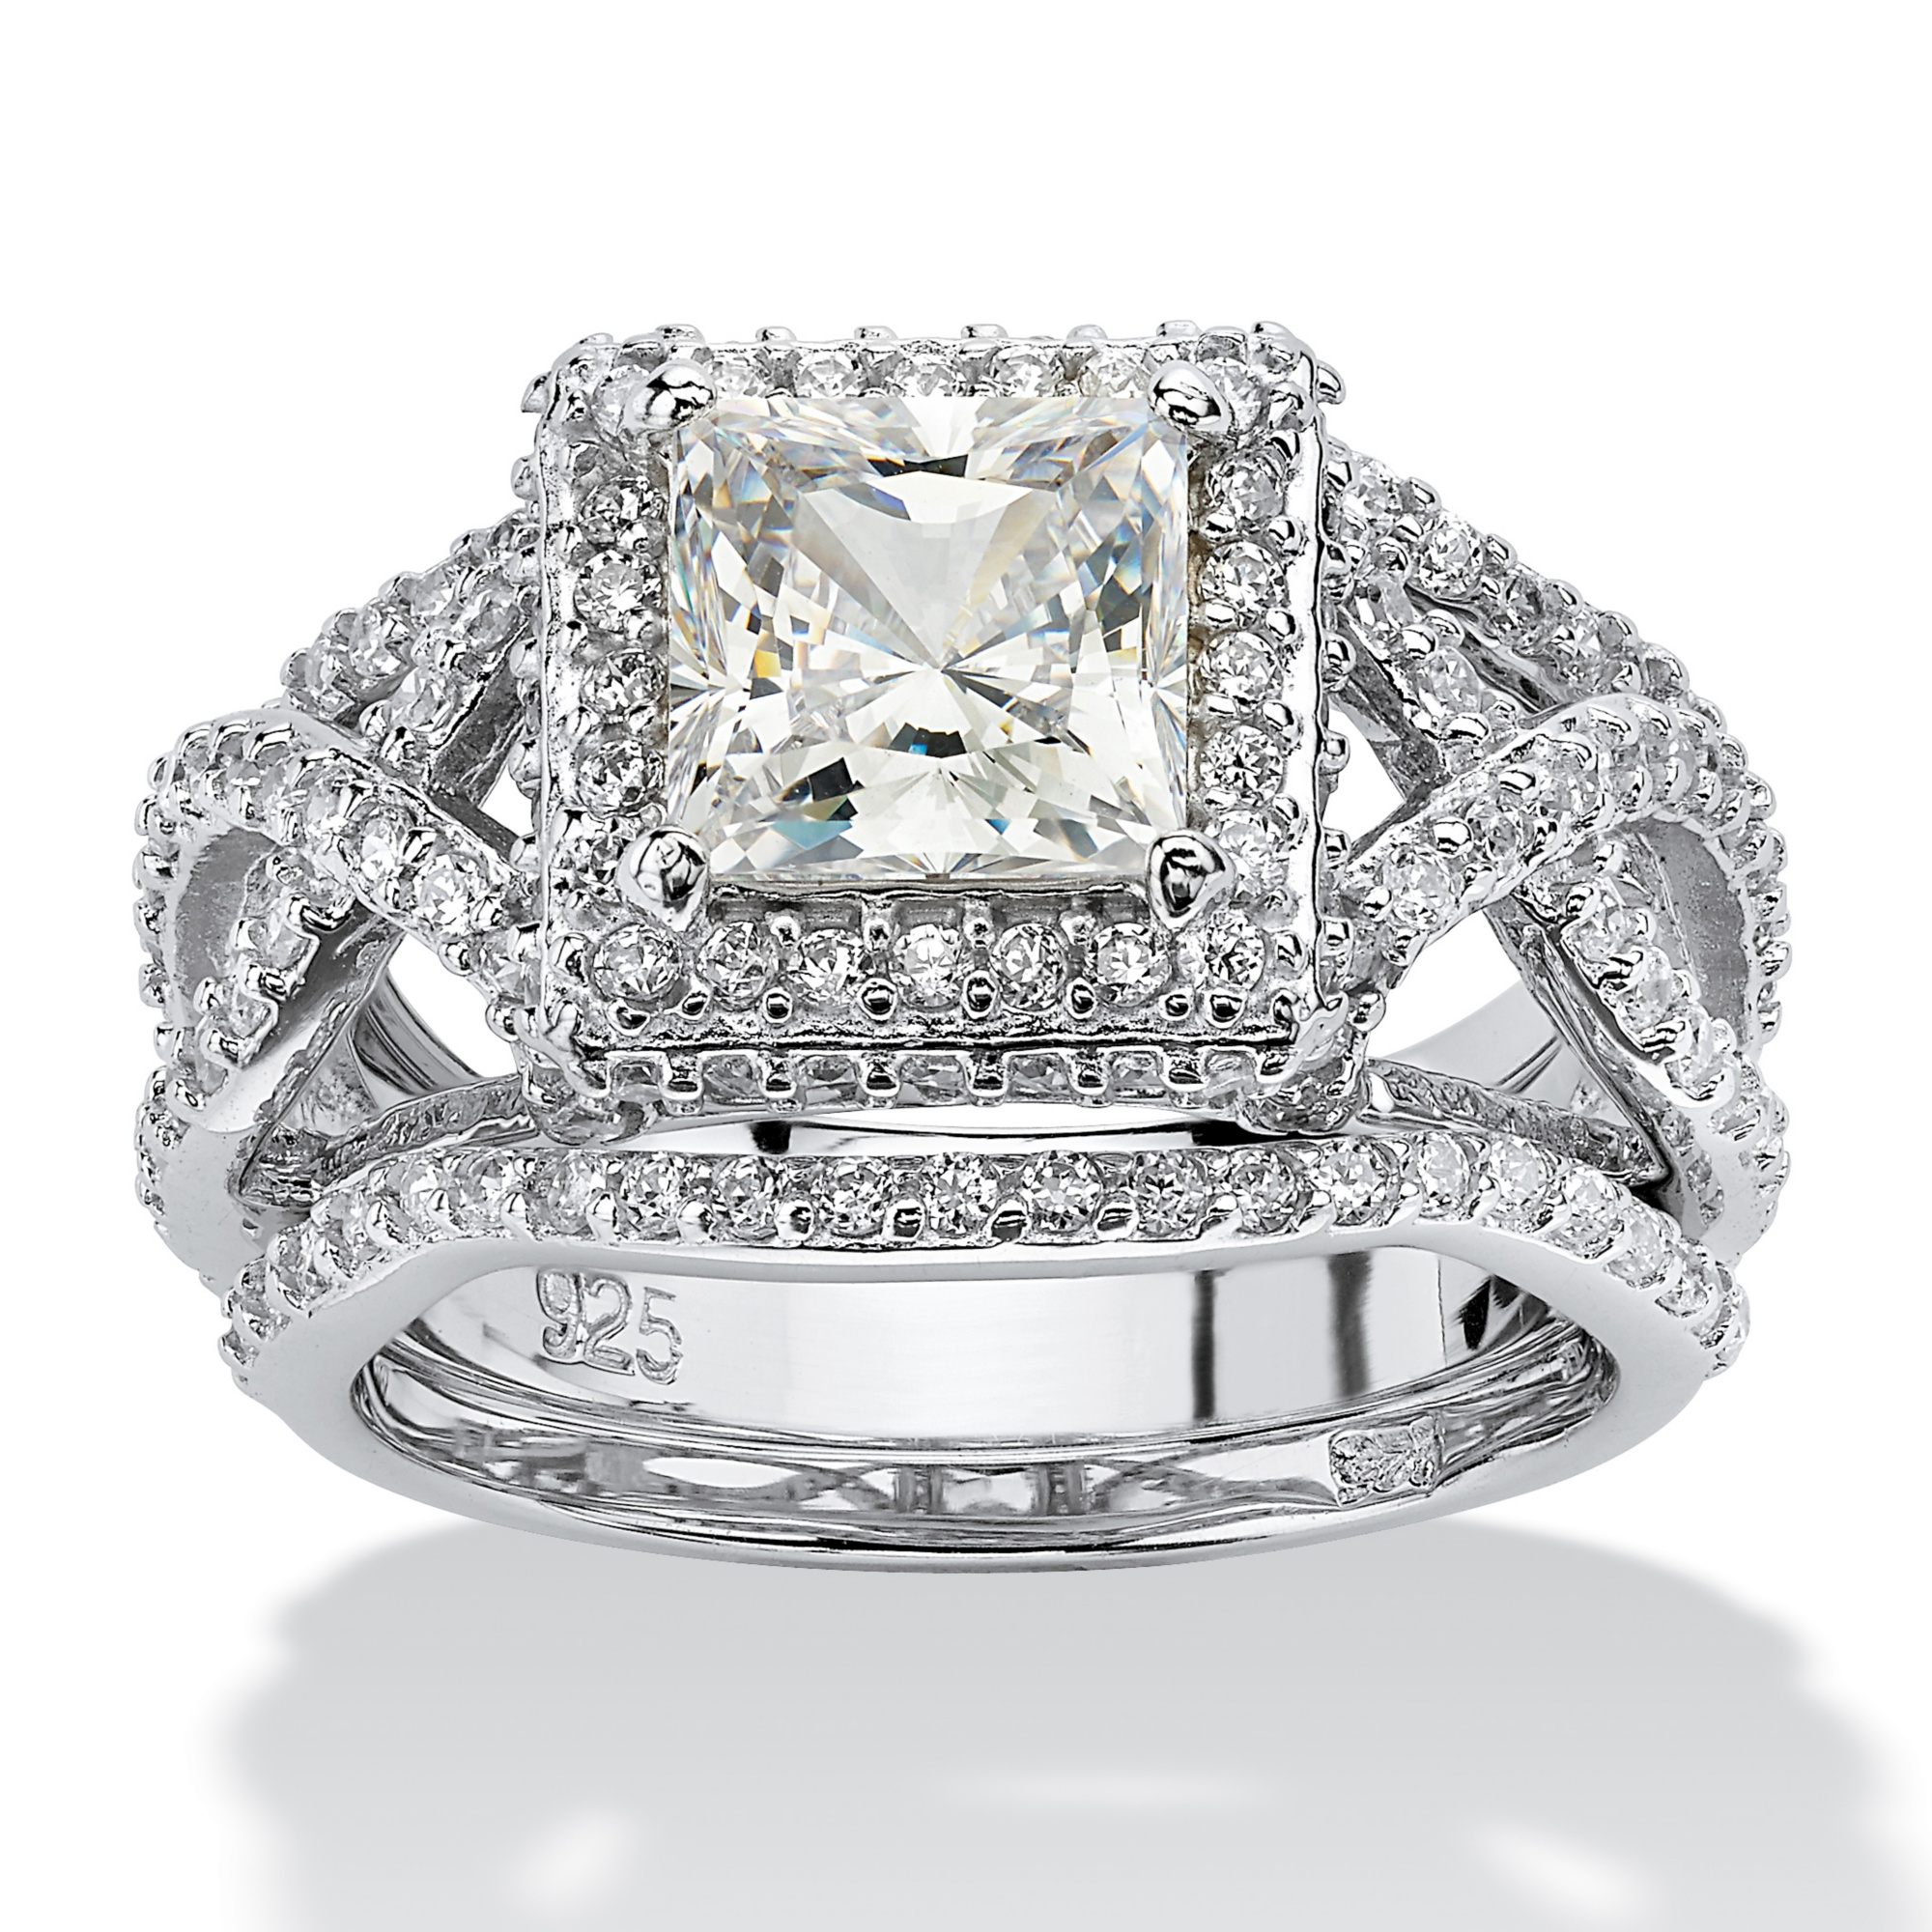 anne engagement fine fced stardust jewellery rings add collections ring sportun to bezel bridal wishlist loading wedding